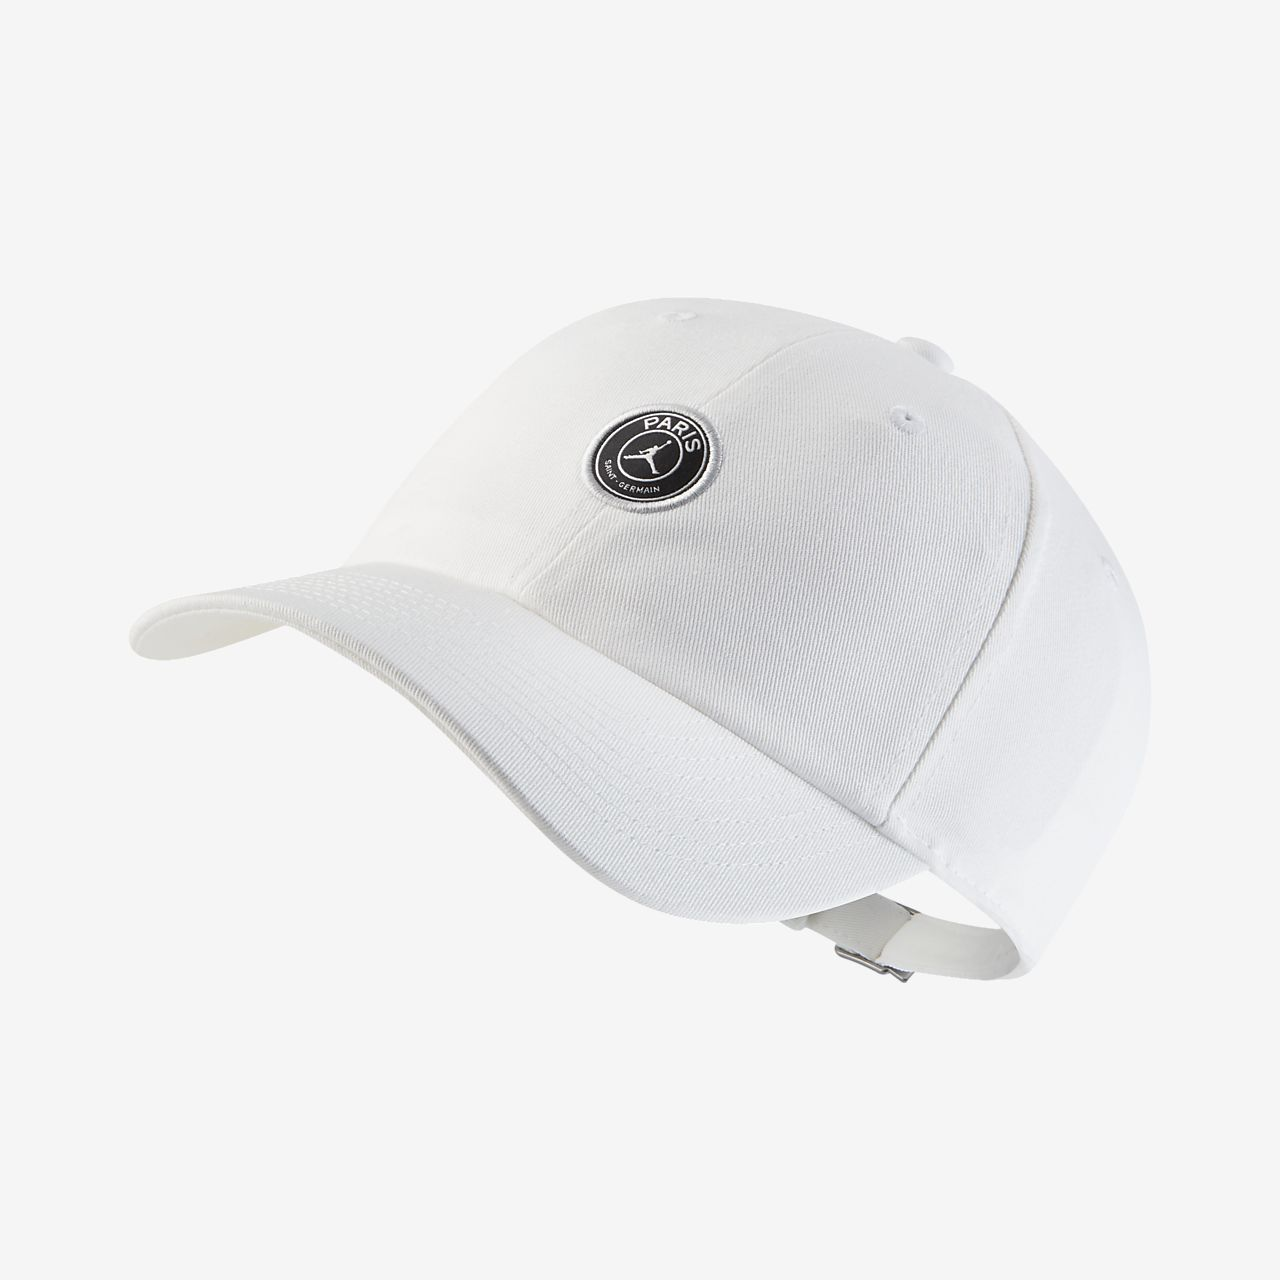 París Saint-Germain Gorra regulable - Niño/a